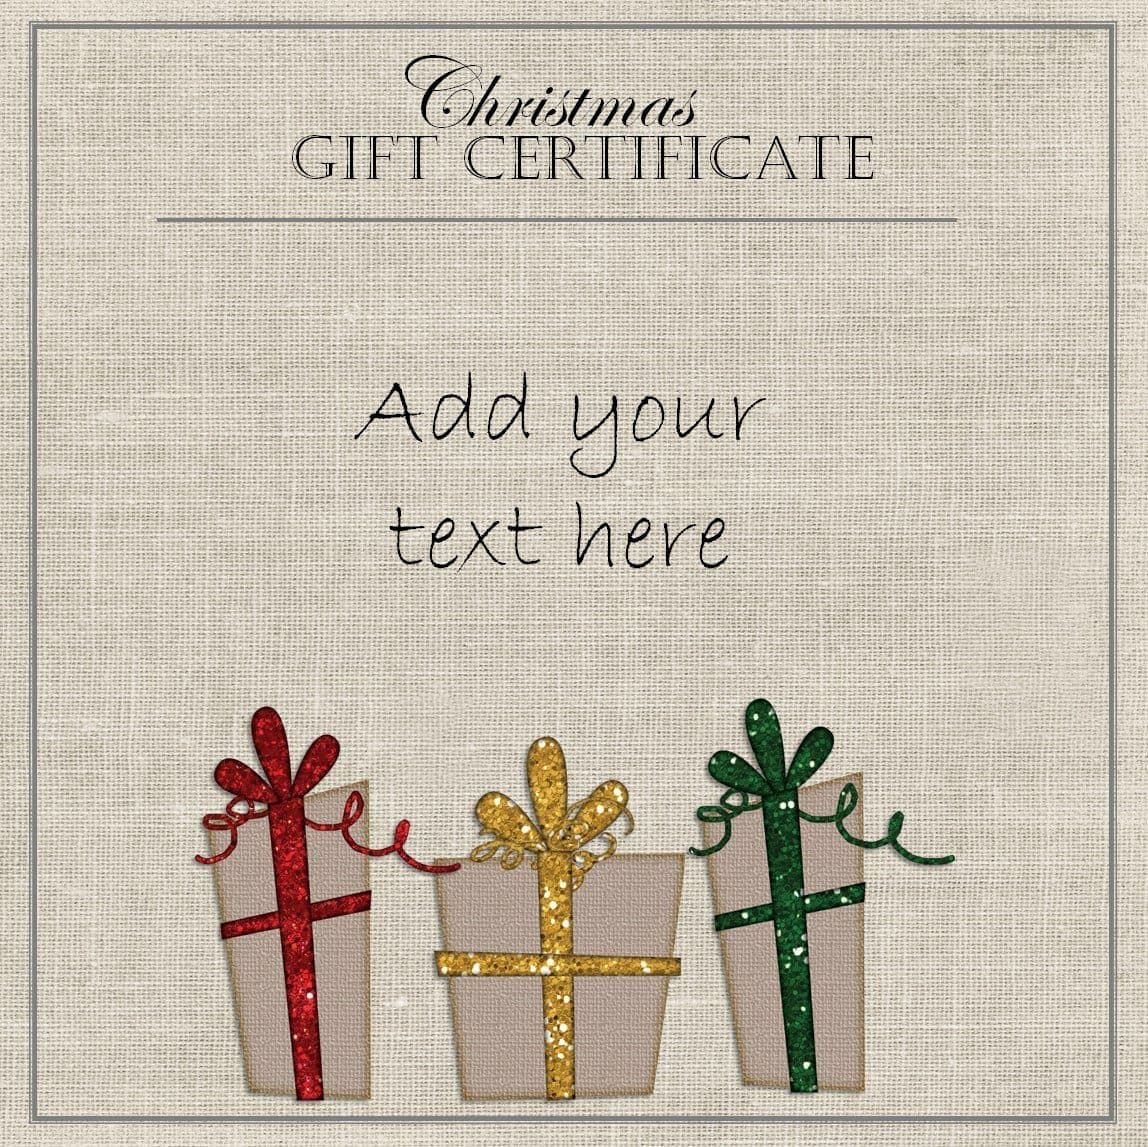 It's just a picture of Soft Free Printable Gift Certificate Christmas